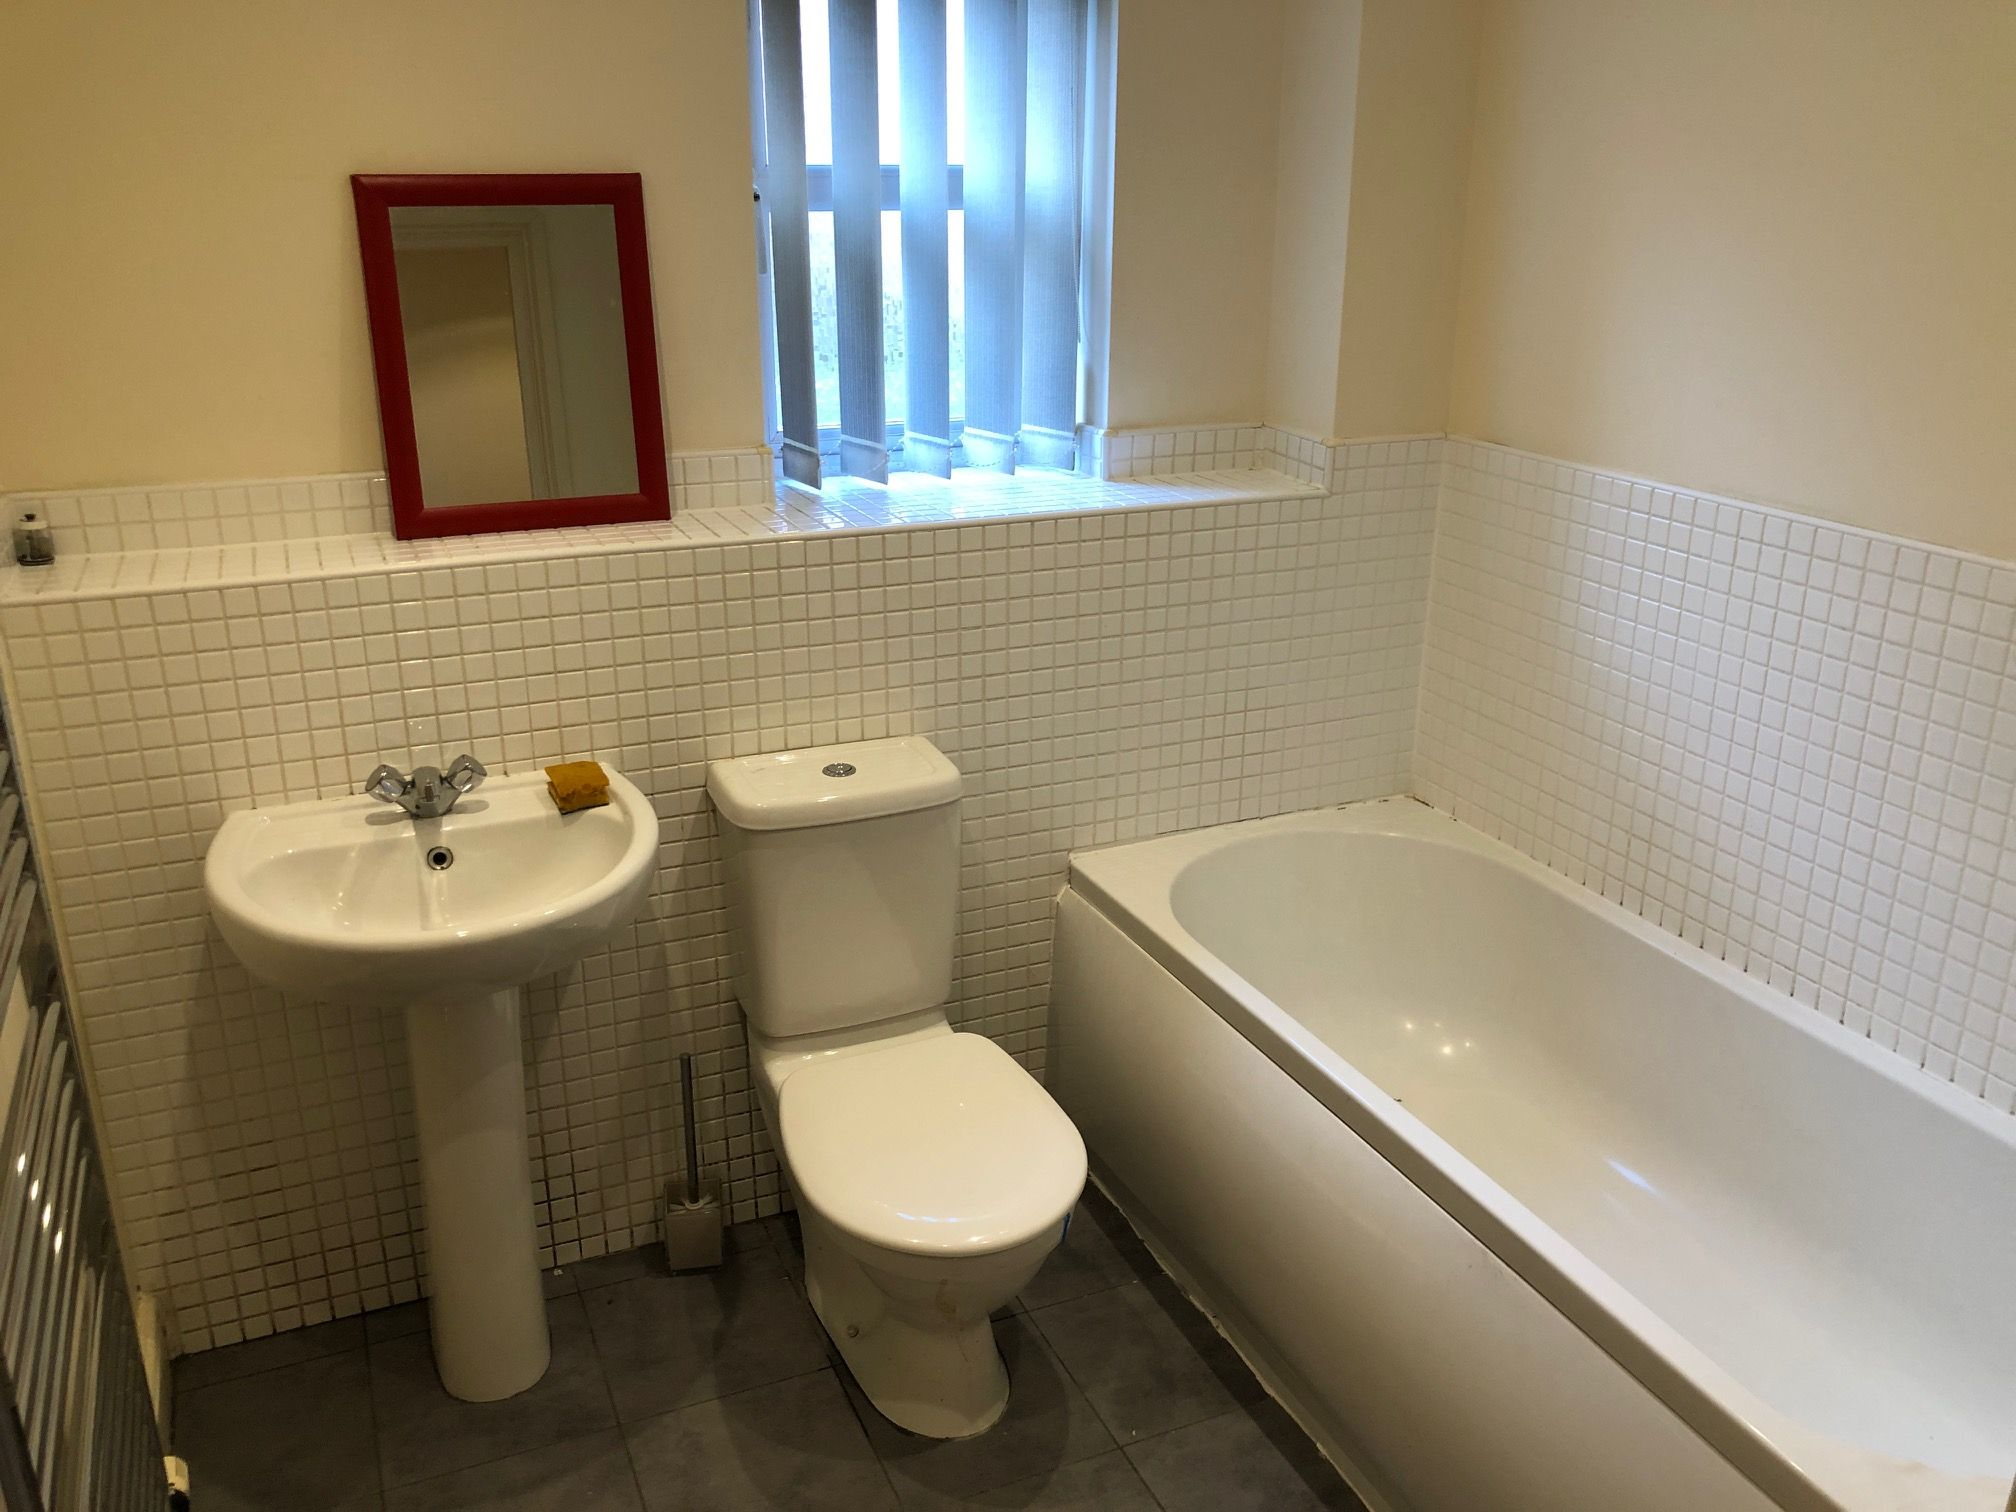 Image 1 of 1 of Bathroom, on Accommodation Comprising for .